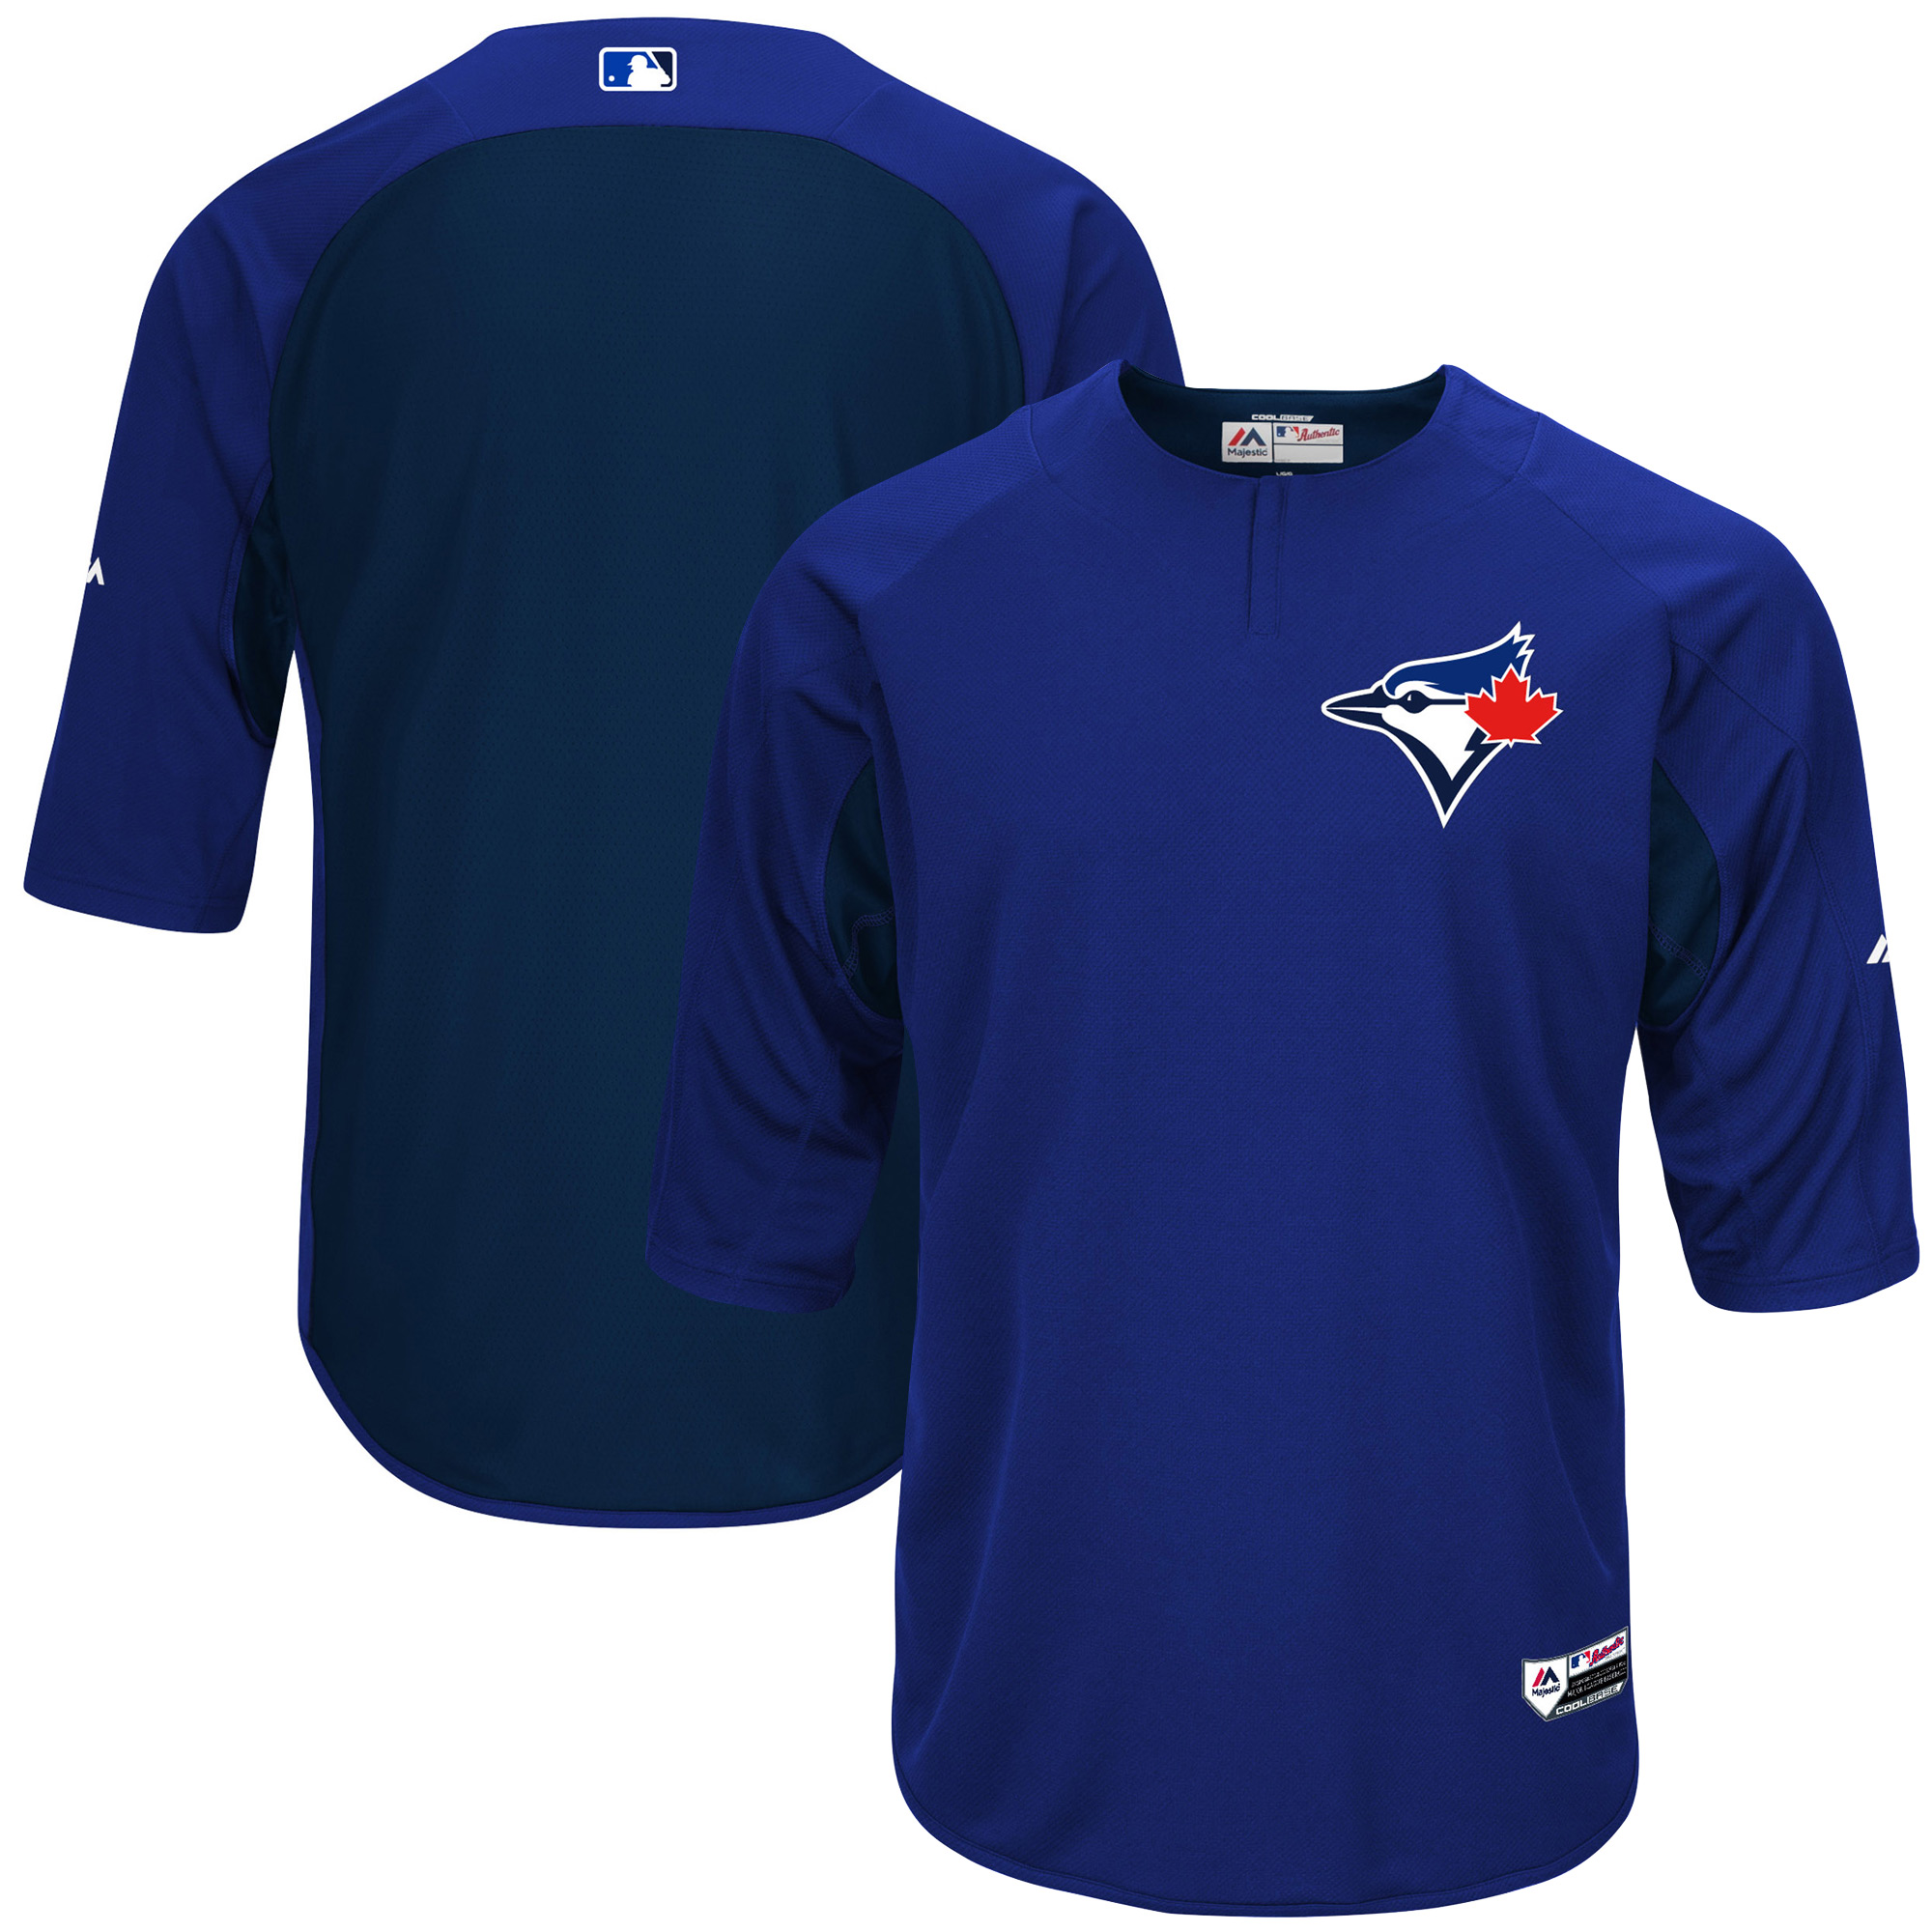 Toronto Blue Jays Majestic Authentic Collection On-Field 3/4-Sleeve Batting Practice Jersey - Royal/Navy